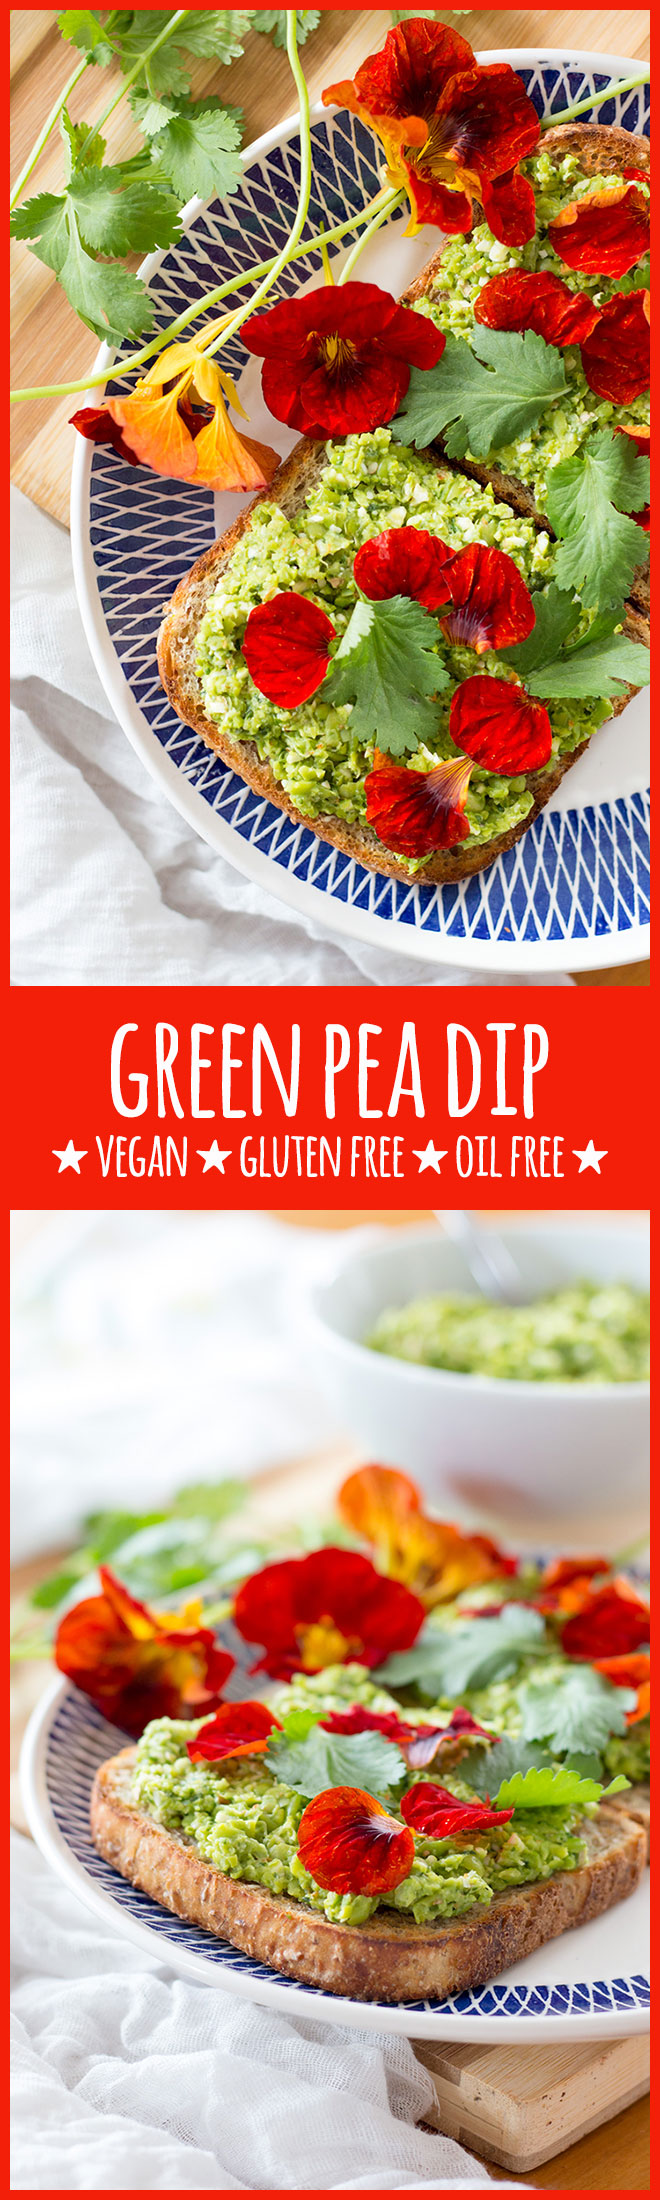 This simple, fresh and tasty dip featuring green peas, coriander and almonds is cheap and can be on the table in under 10 minutes.